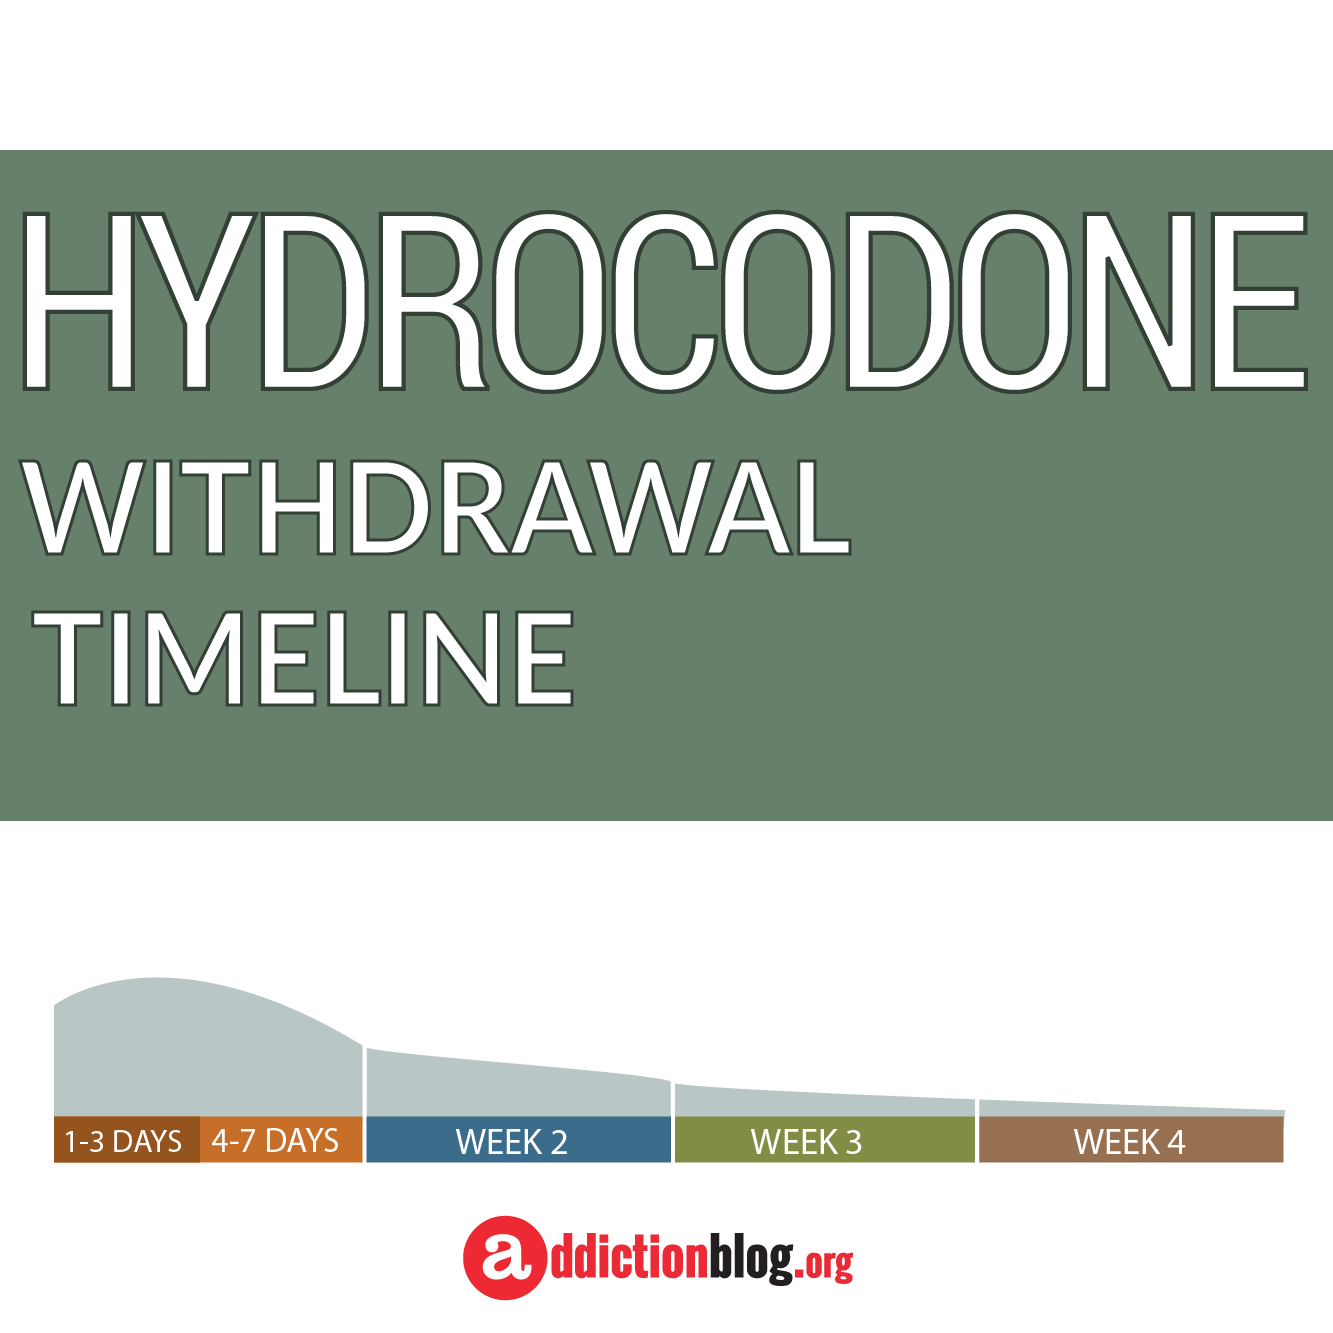 Hydrocodone Withdrawal Timeline: A Guide to Detox Symptoms